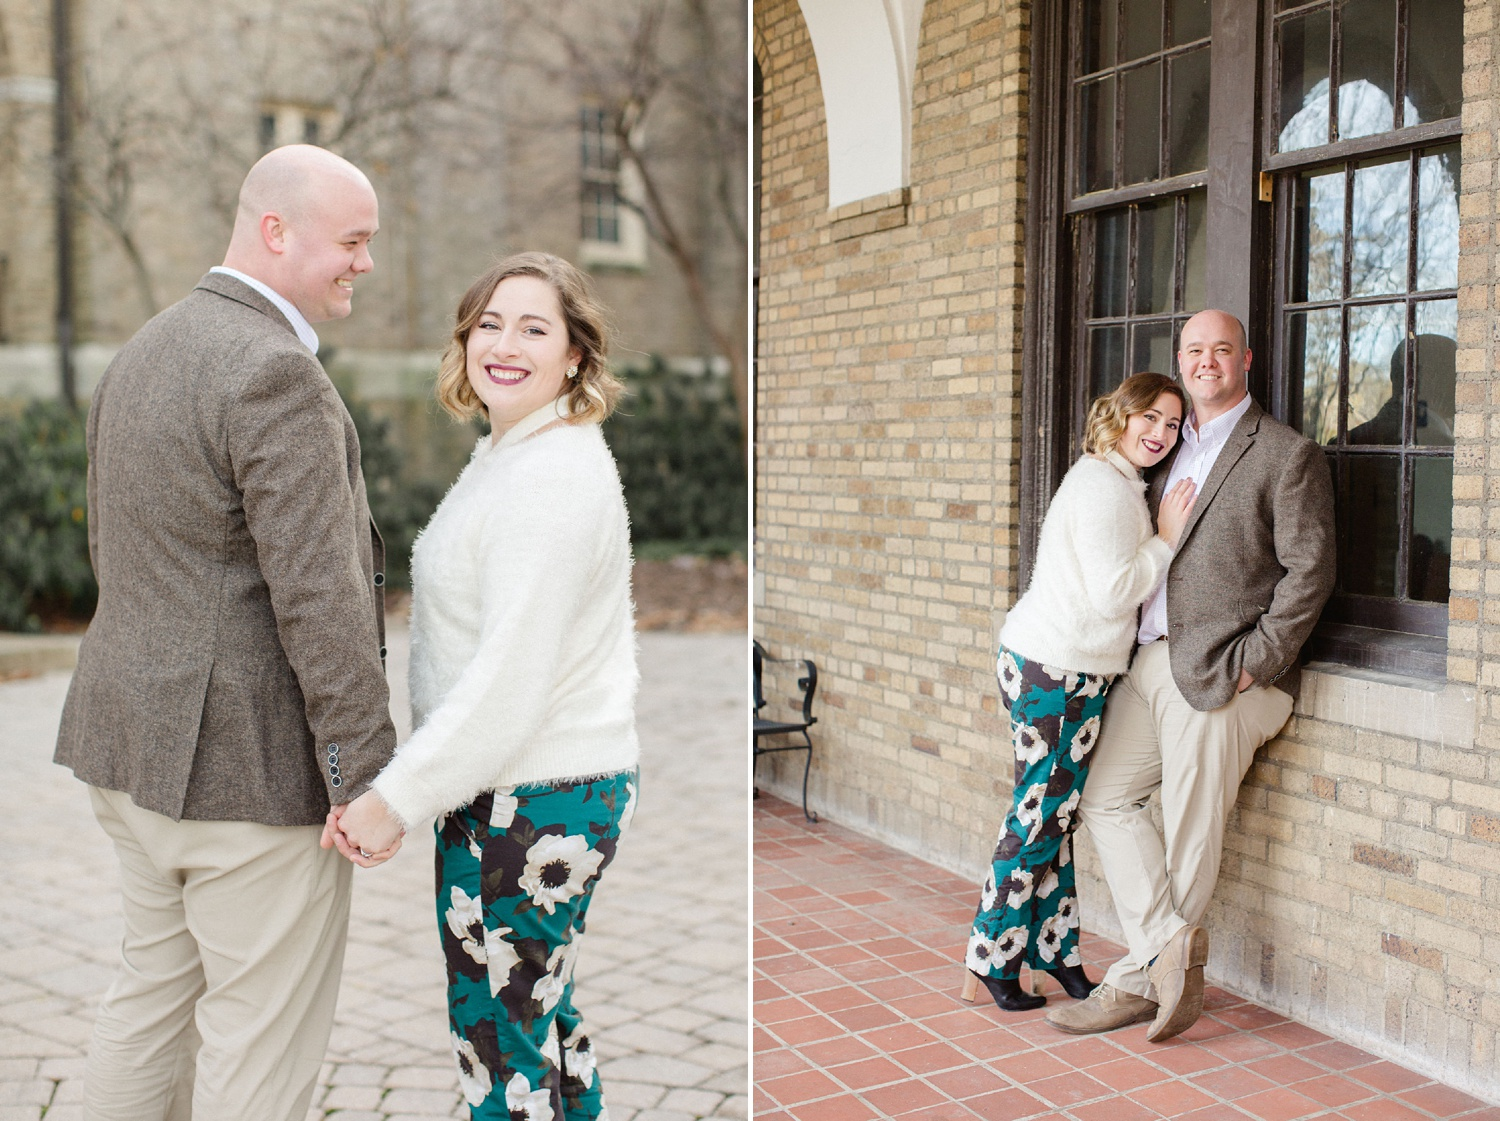 Clarks Summit PA Engagement Session Anniversary Photos_0030.jpg